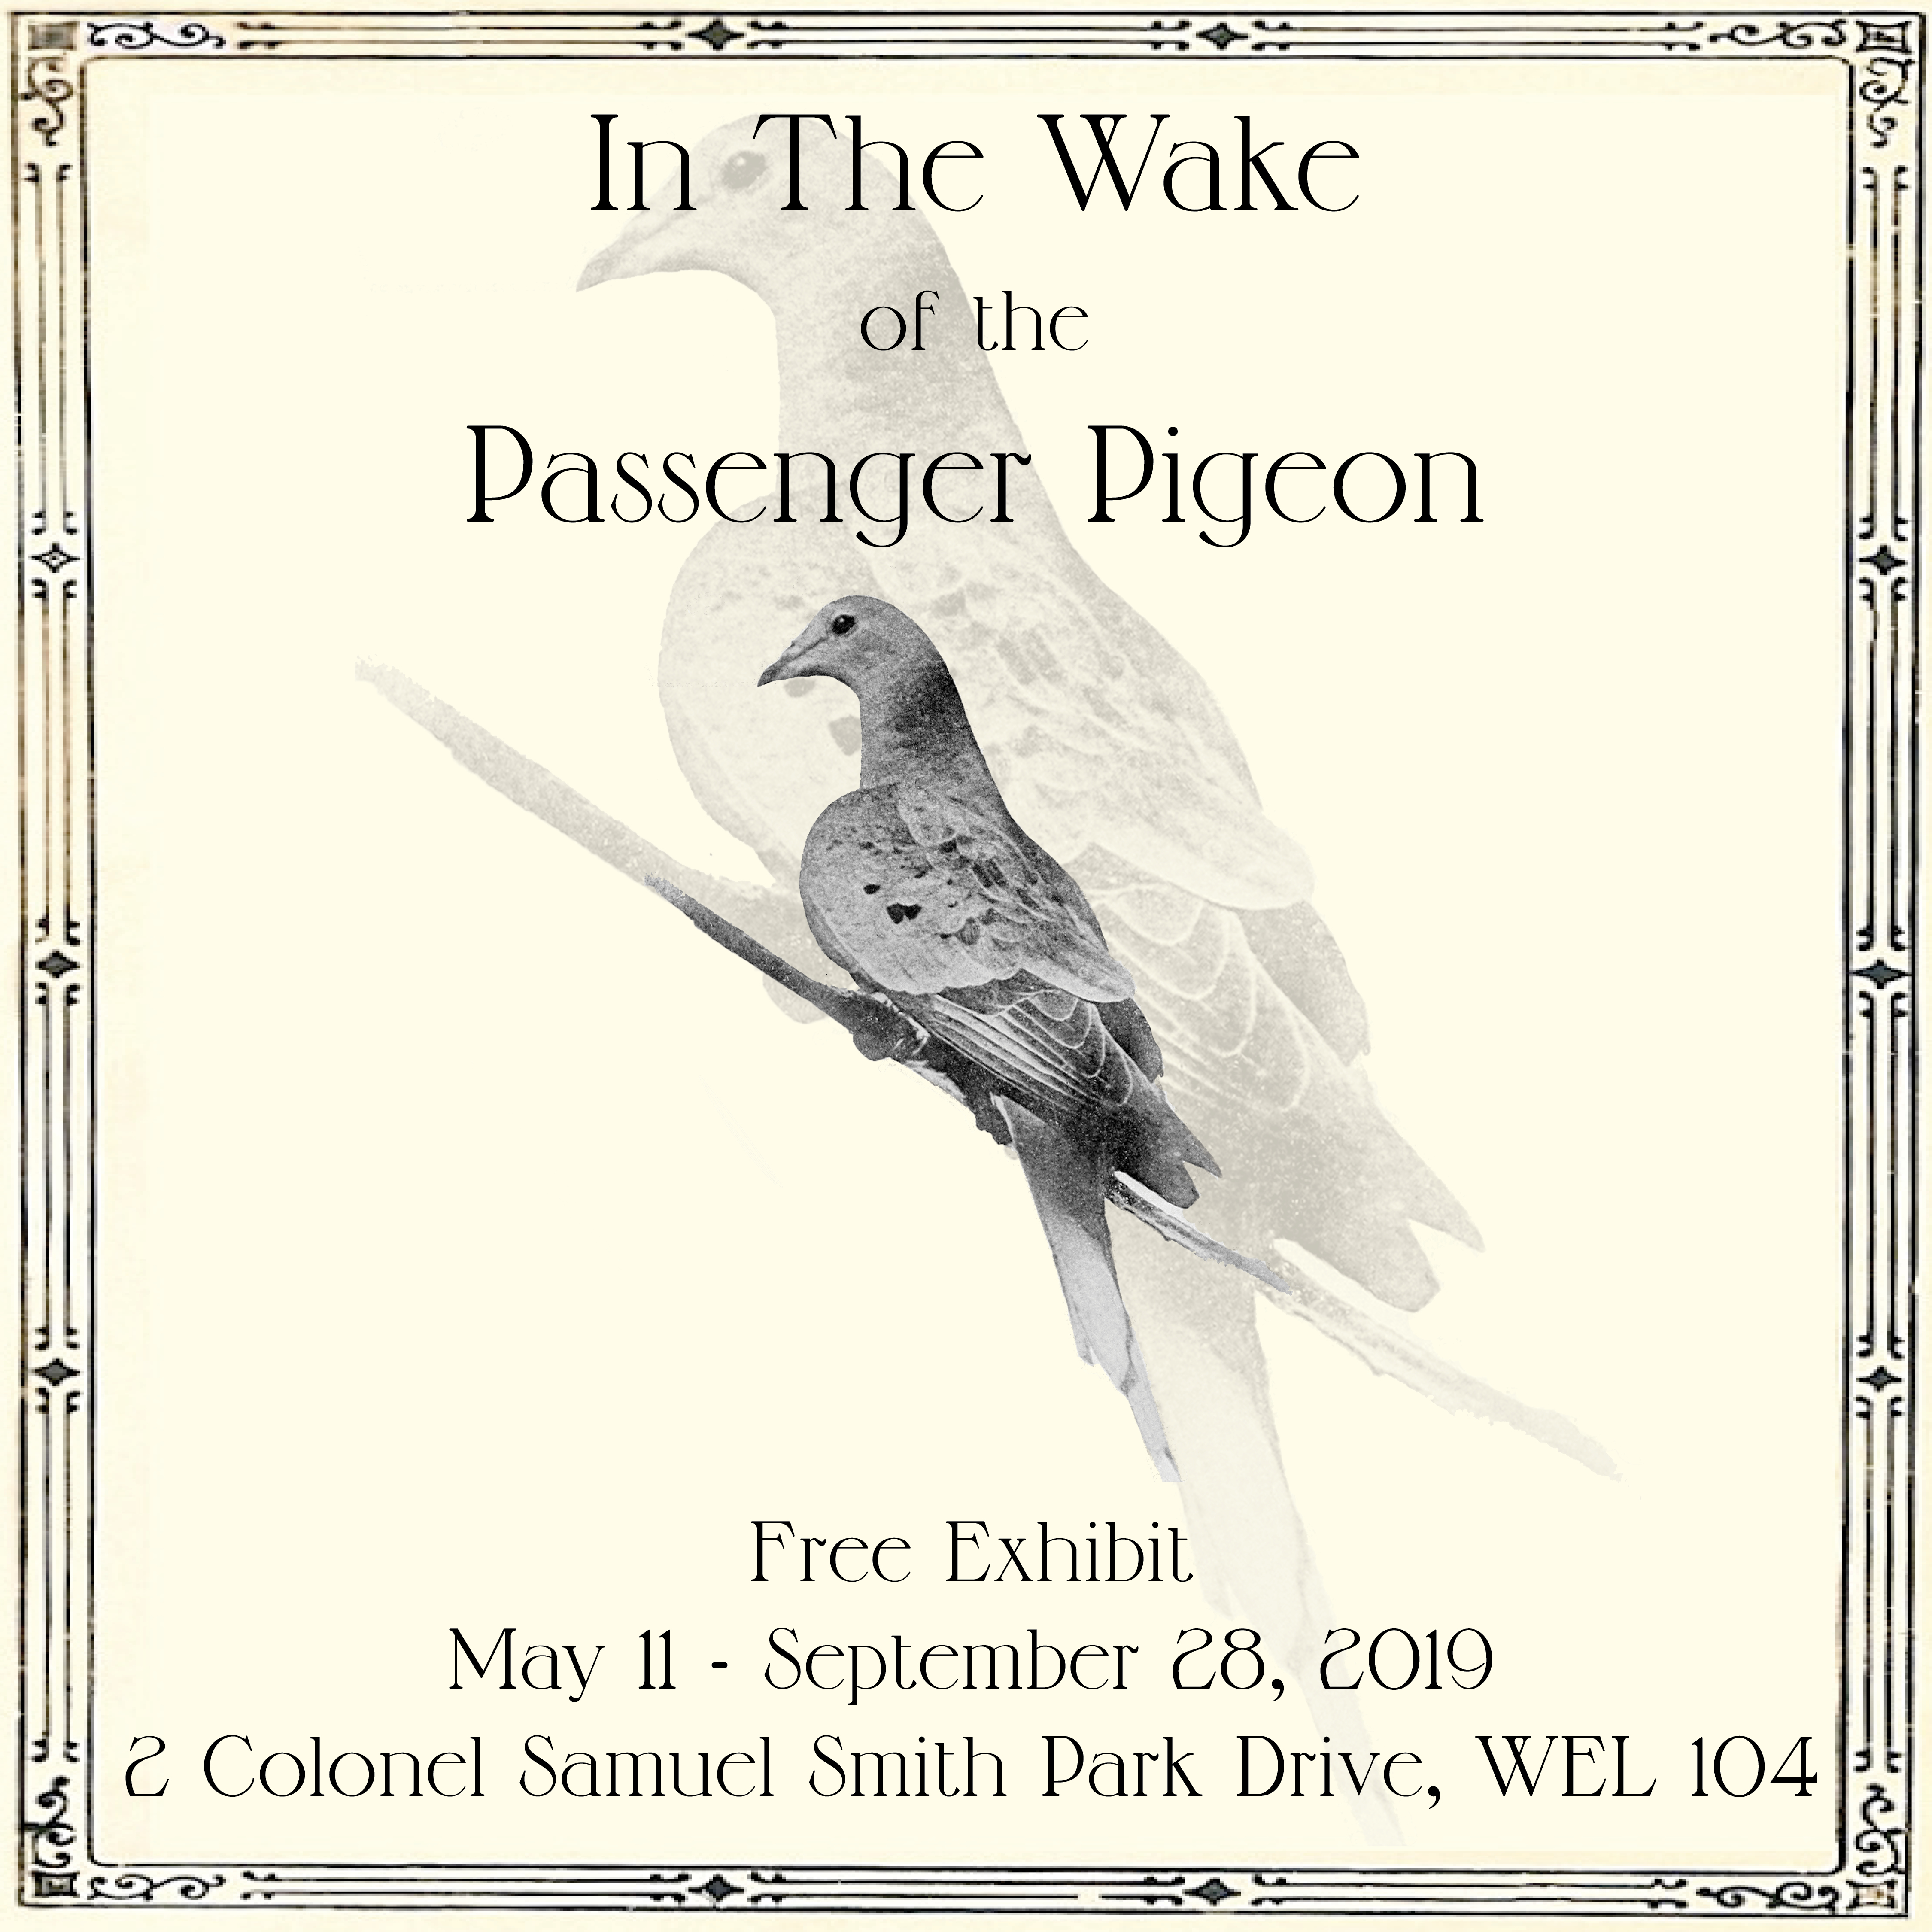 In the Wake of the Passenger Pigeon. Free Exhibit. May 11-September 28, 2019. 2 Colonel Samuel Smith Park Drive, WEL 104.